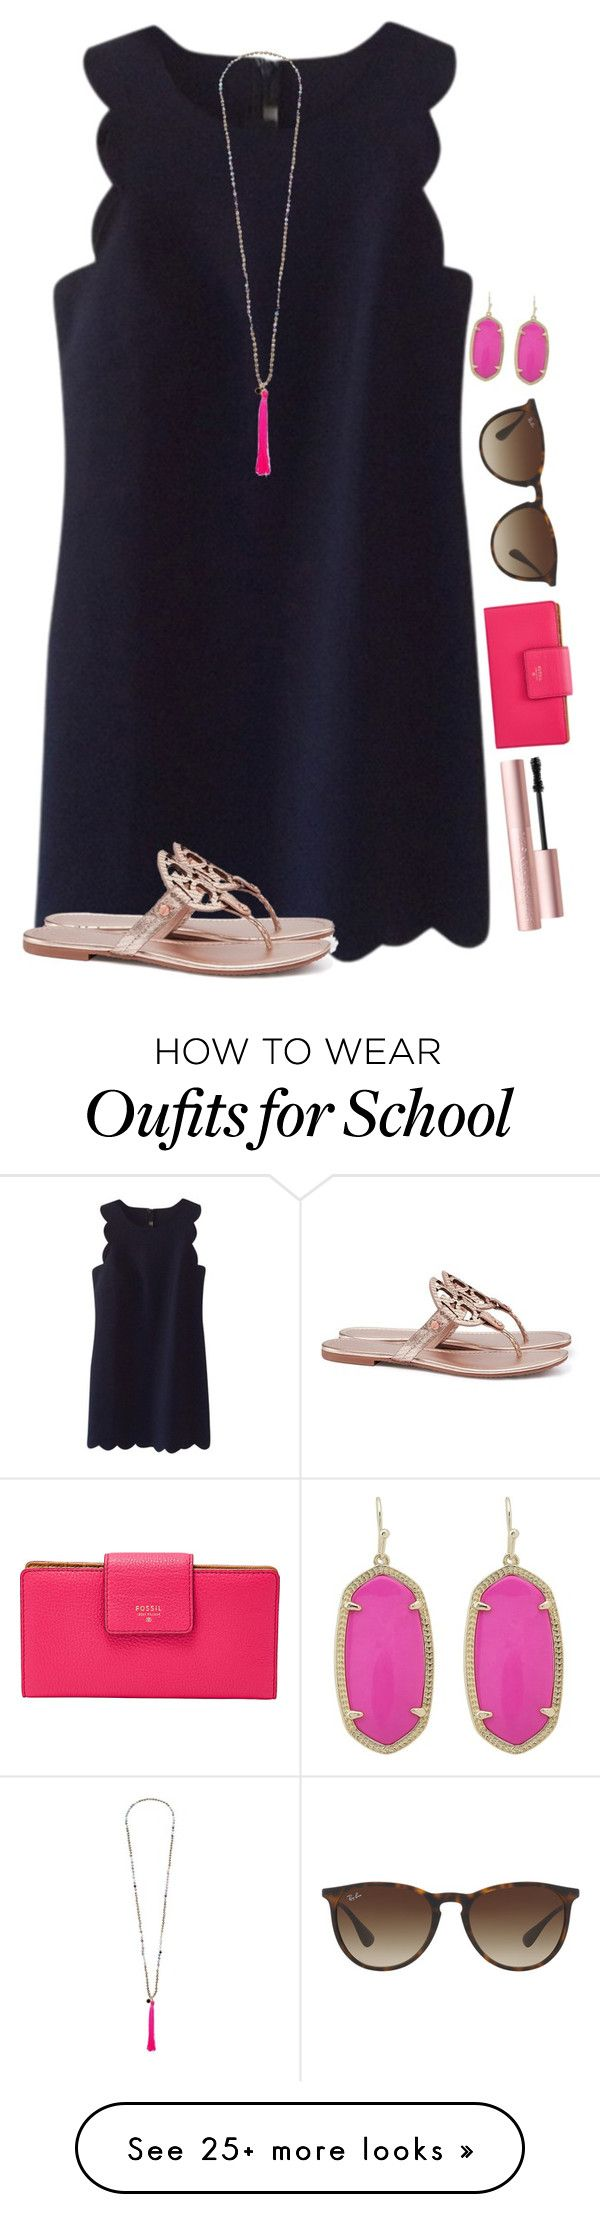 """Day 3: school dance"" by blonde-prepster on Polyvore featuring J.Crew, Tory Burch, French Connection, Too Faced Cosmetics, FOSSIL, Ray-Ban and Kendra Scott"